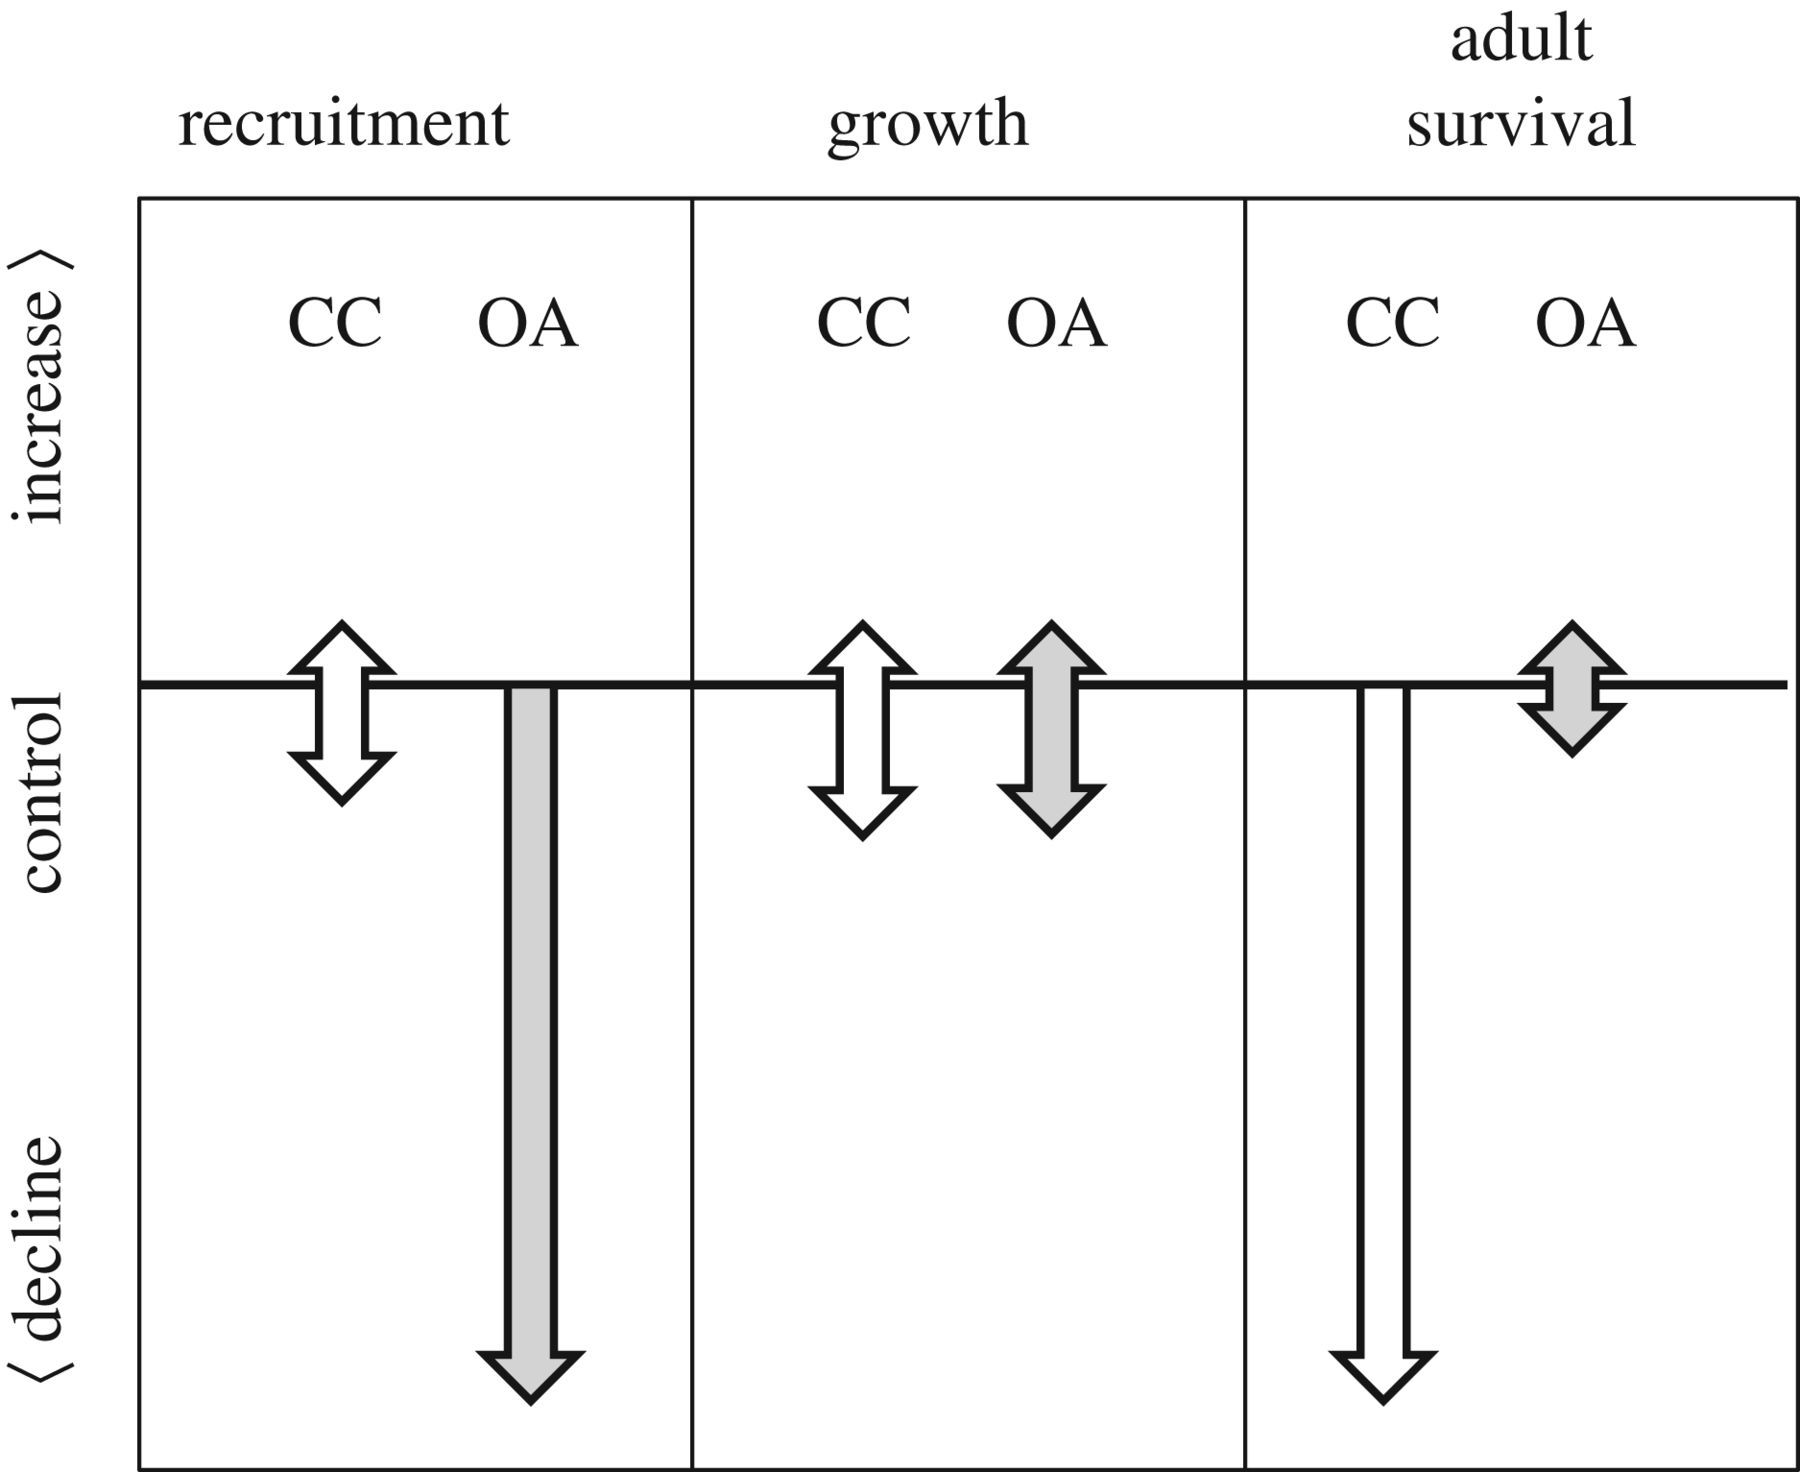 Low recruitment due to altered settlement substrata as